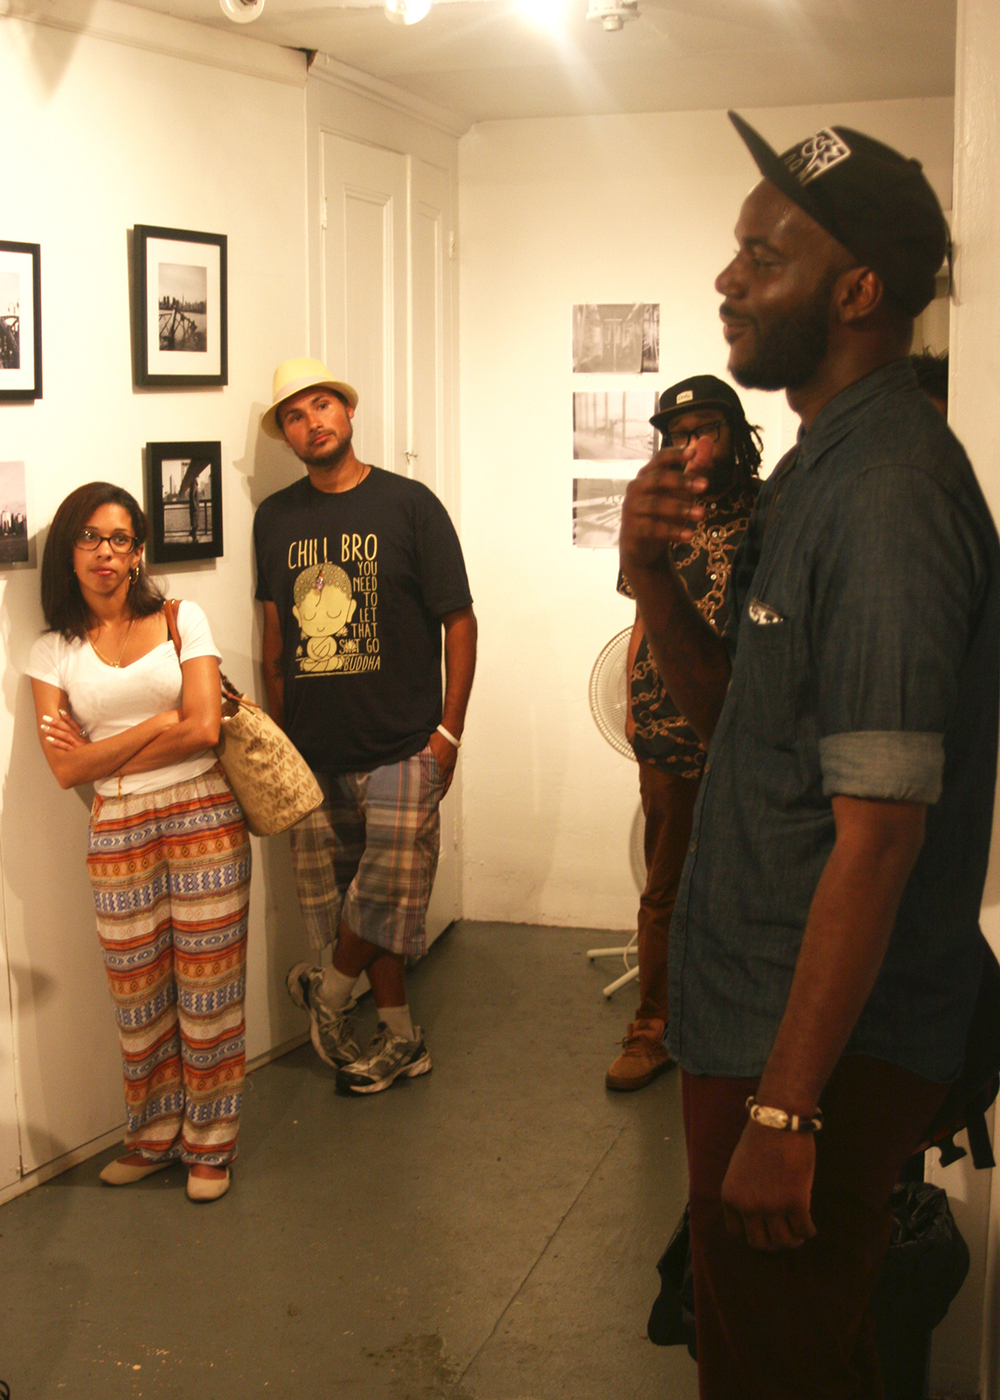 Life and Death in The Age of Ghost art show, curated by Lateef Dameer at Undercurrent Projects Gallery (recap) Image 10